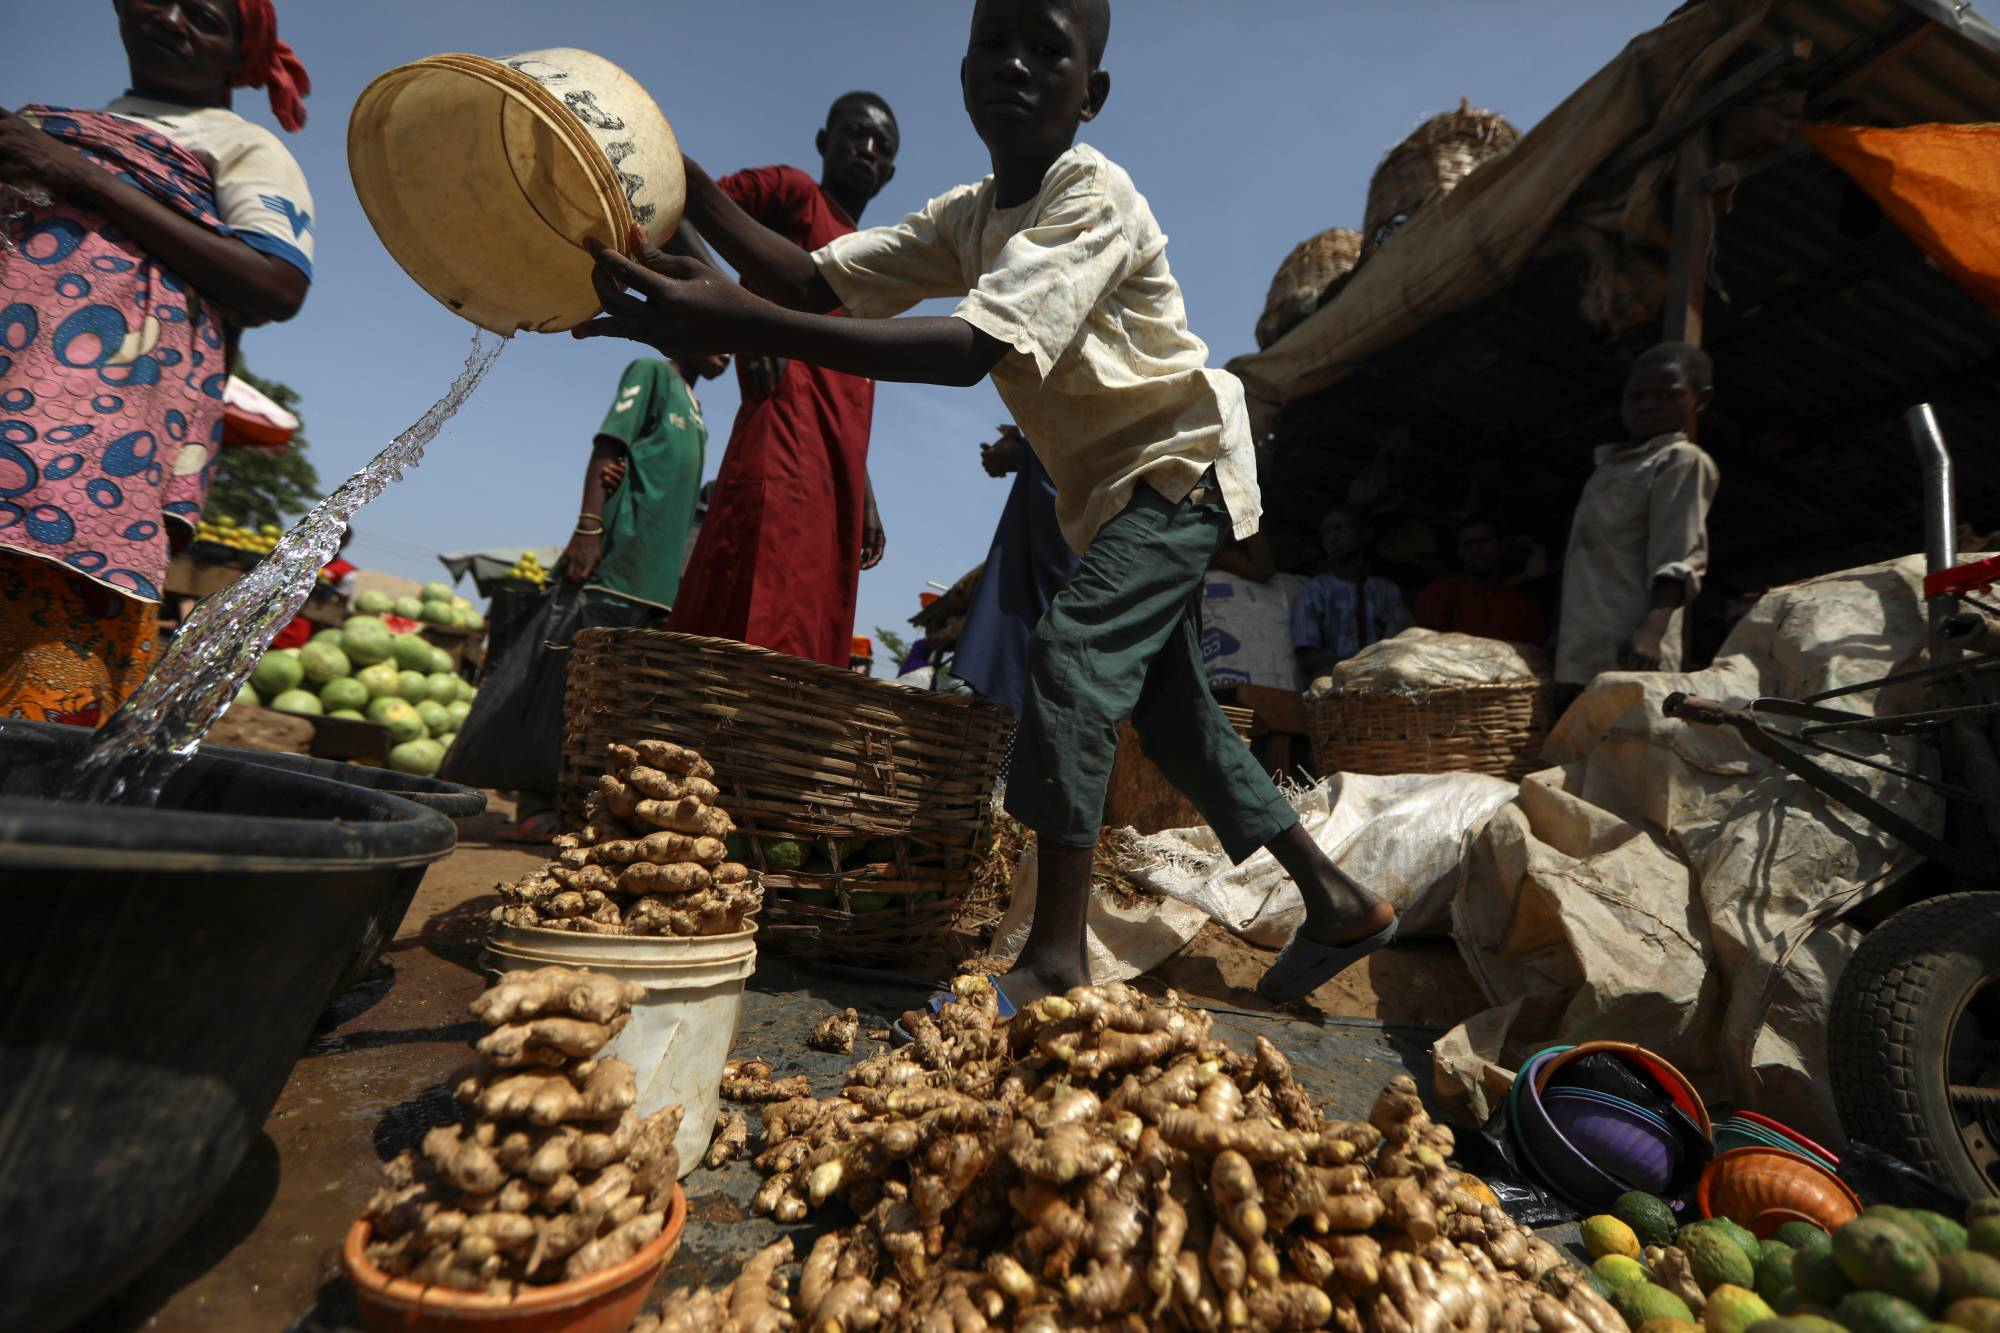 A boy pours water into a container to wash fresh ginger at a market in Kaduna, Nigeria. | REUTERS